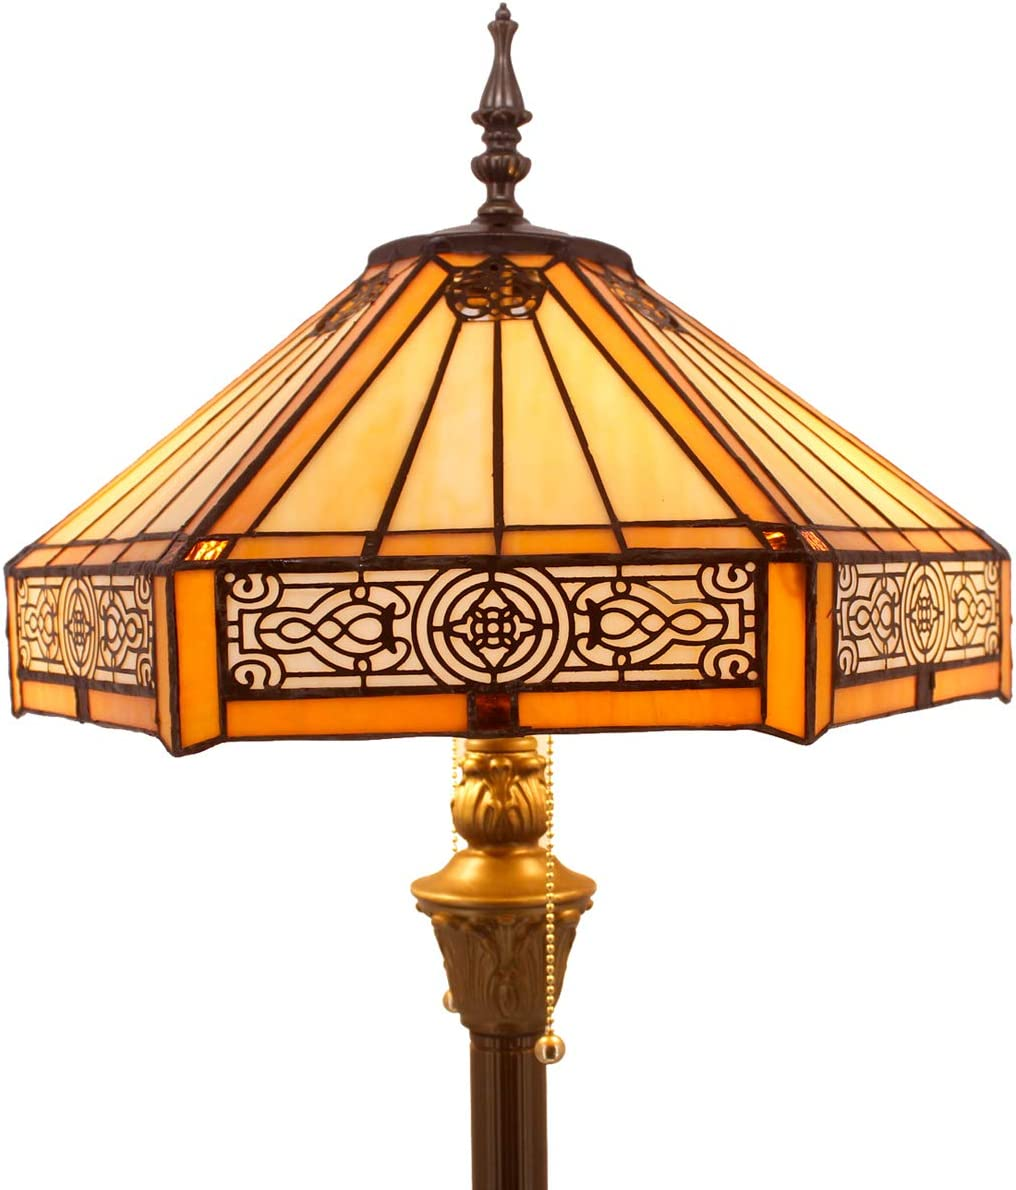 Tiffany Floor Lamp Yellow Hexagon Stained Glass Lampshade Mission Style Coffee Table Reading Lamps Antique Base Lighting W16 H64 Inch Living Room Bedroom Bookcase Bedside Desk S011 WERFACTORY